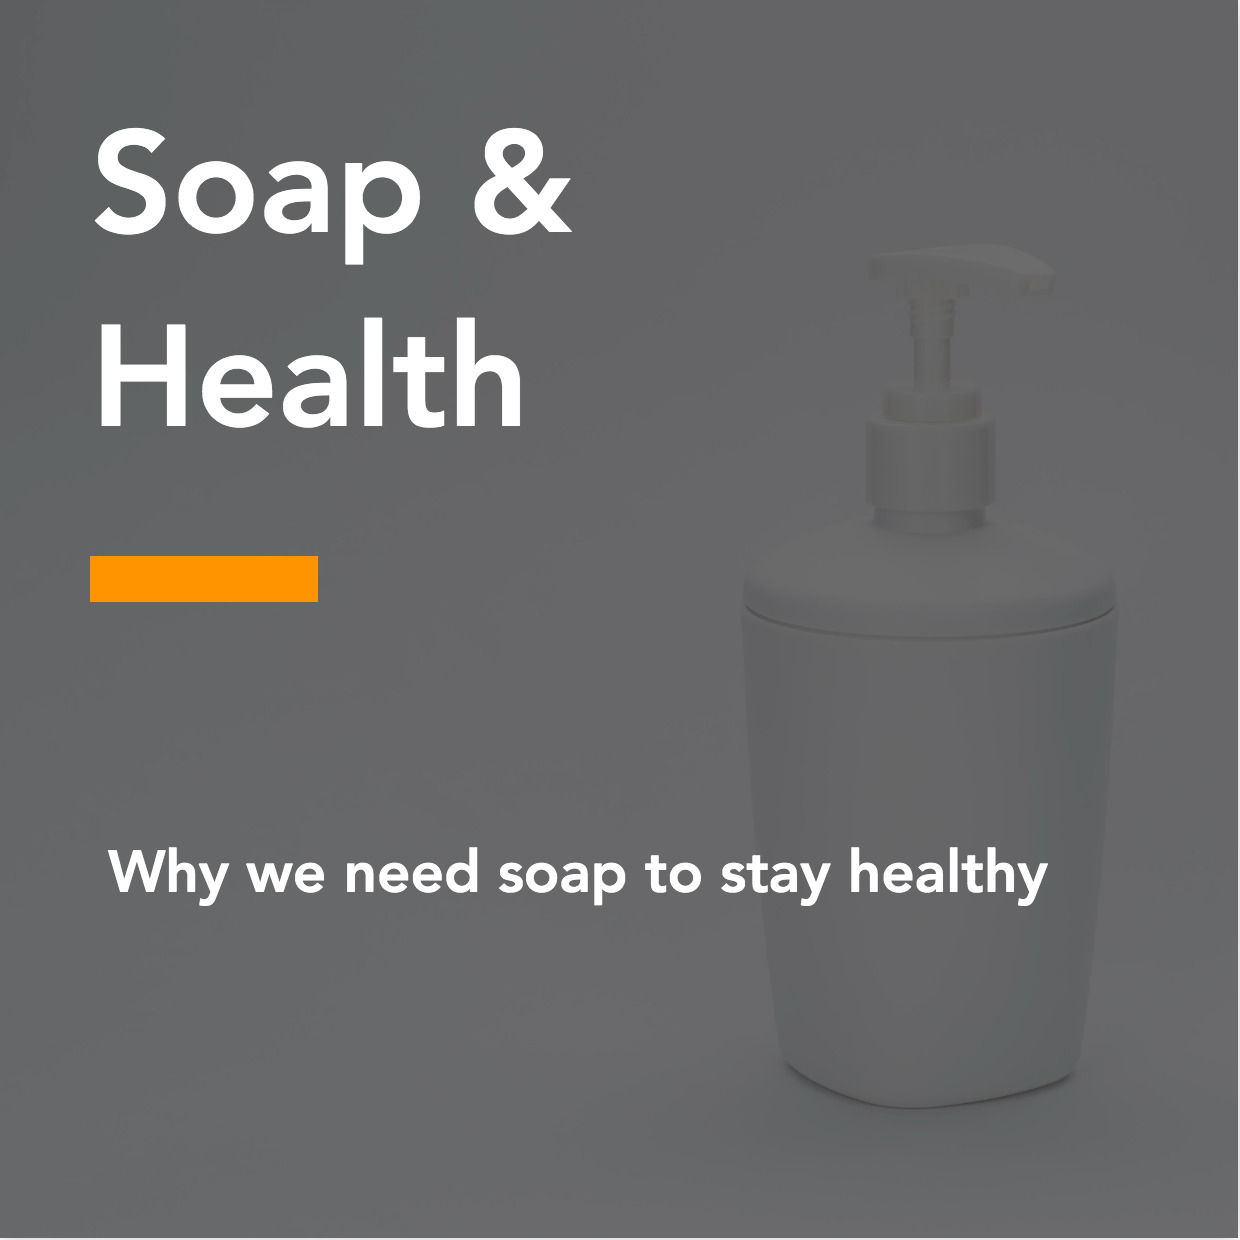 Why we need soap to stay healthy